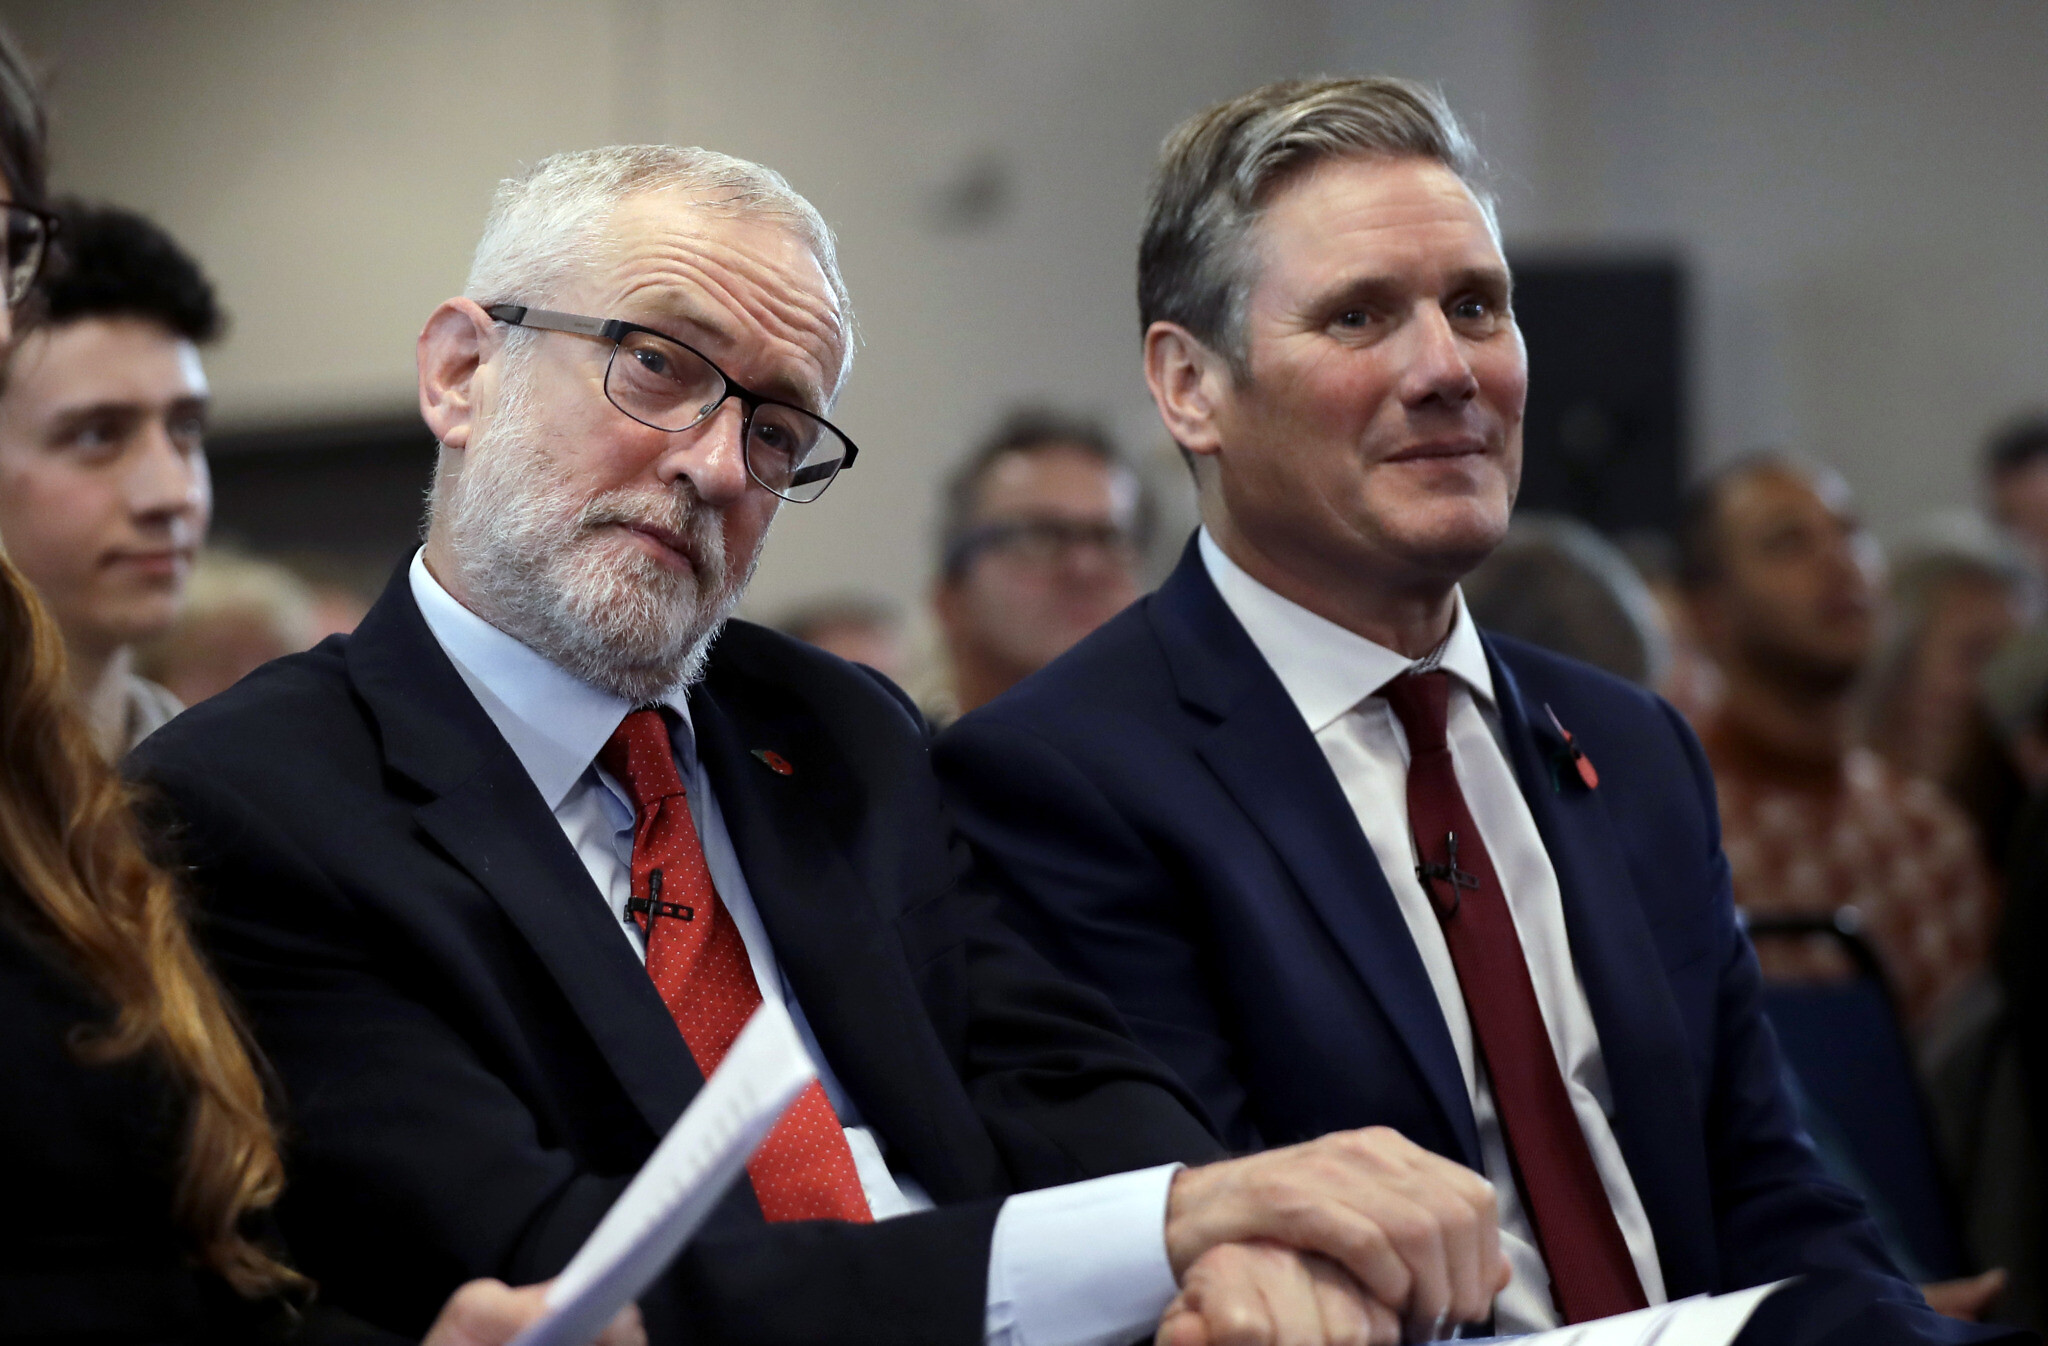 UK Labour tears itself apart, again, over ex leader Corbyn and ...